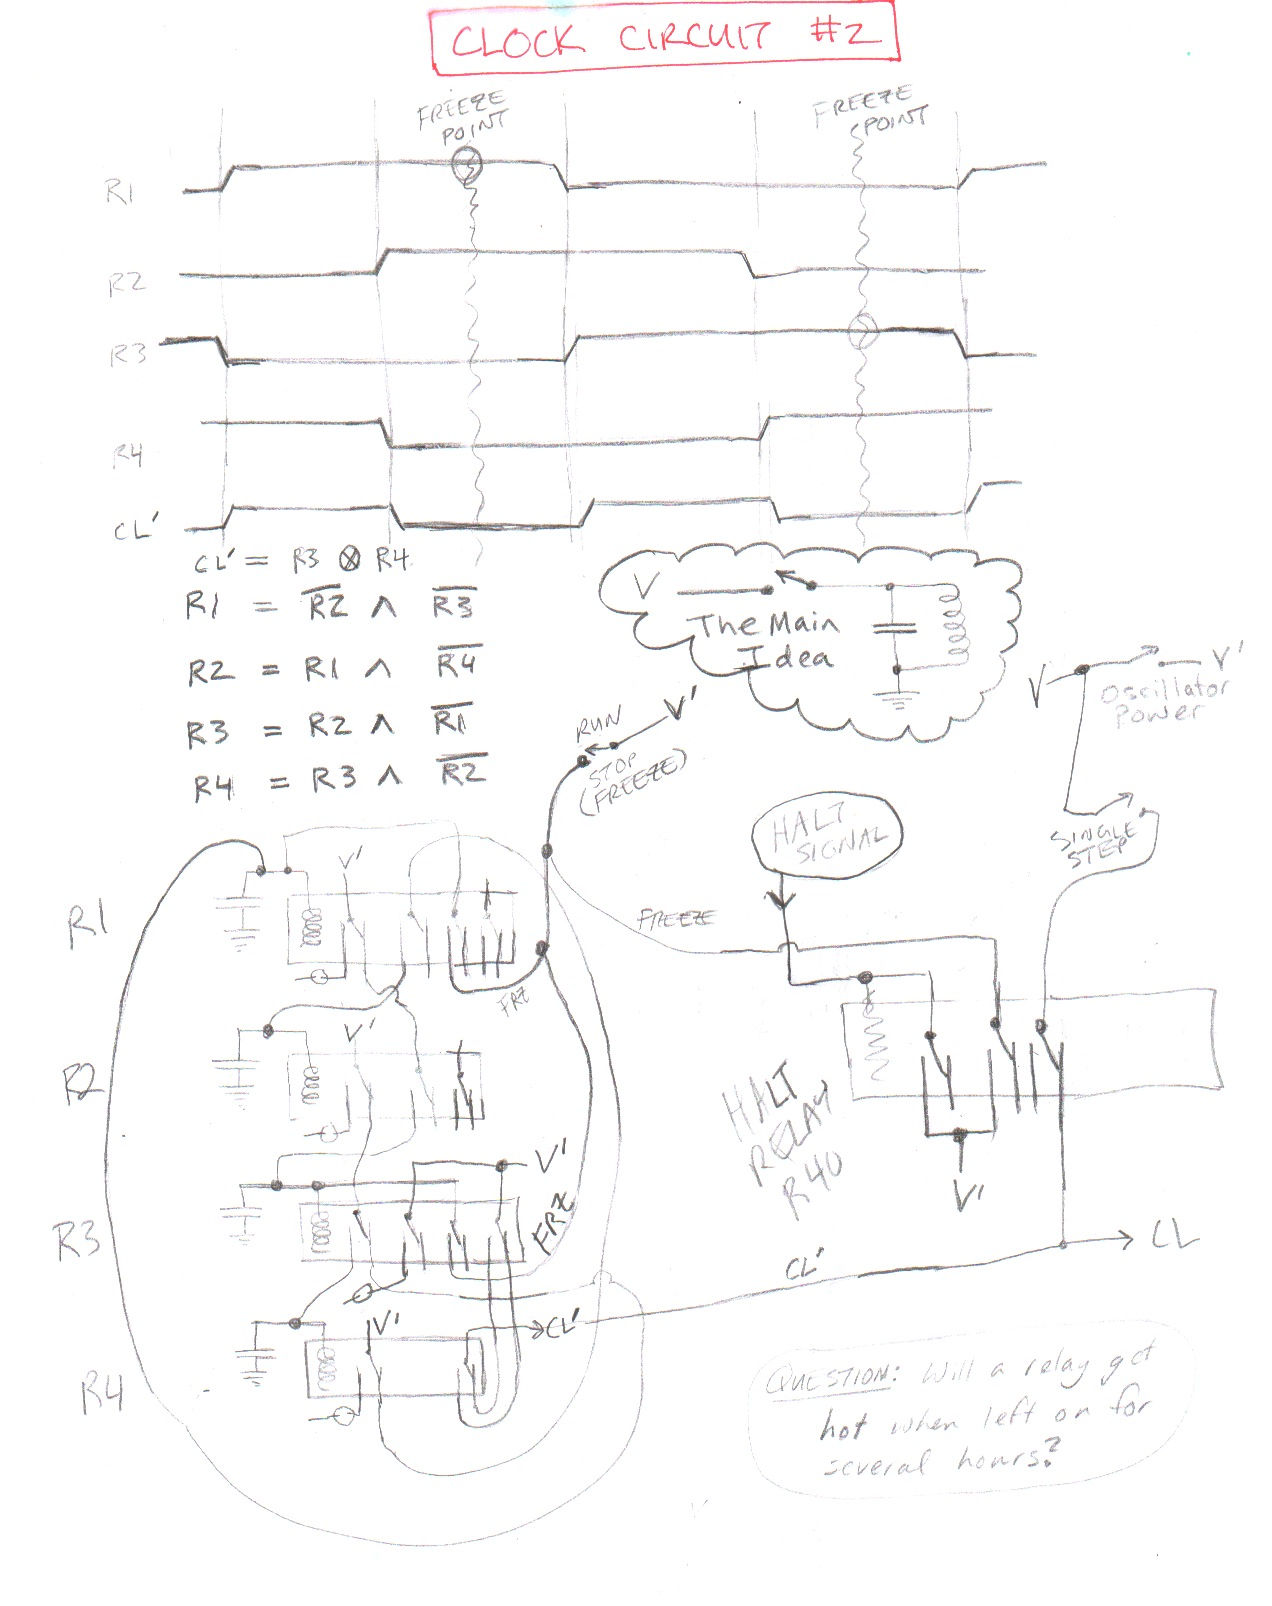 Circuit Diagrams Clock Circuits Images Clockcircuit 1